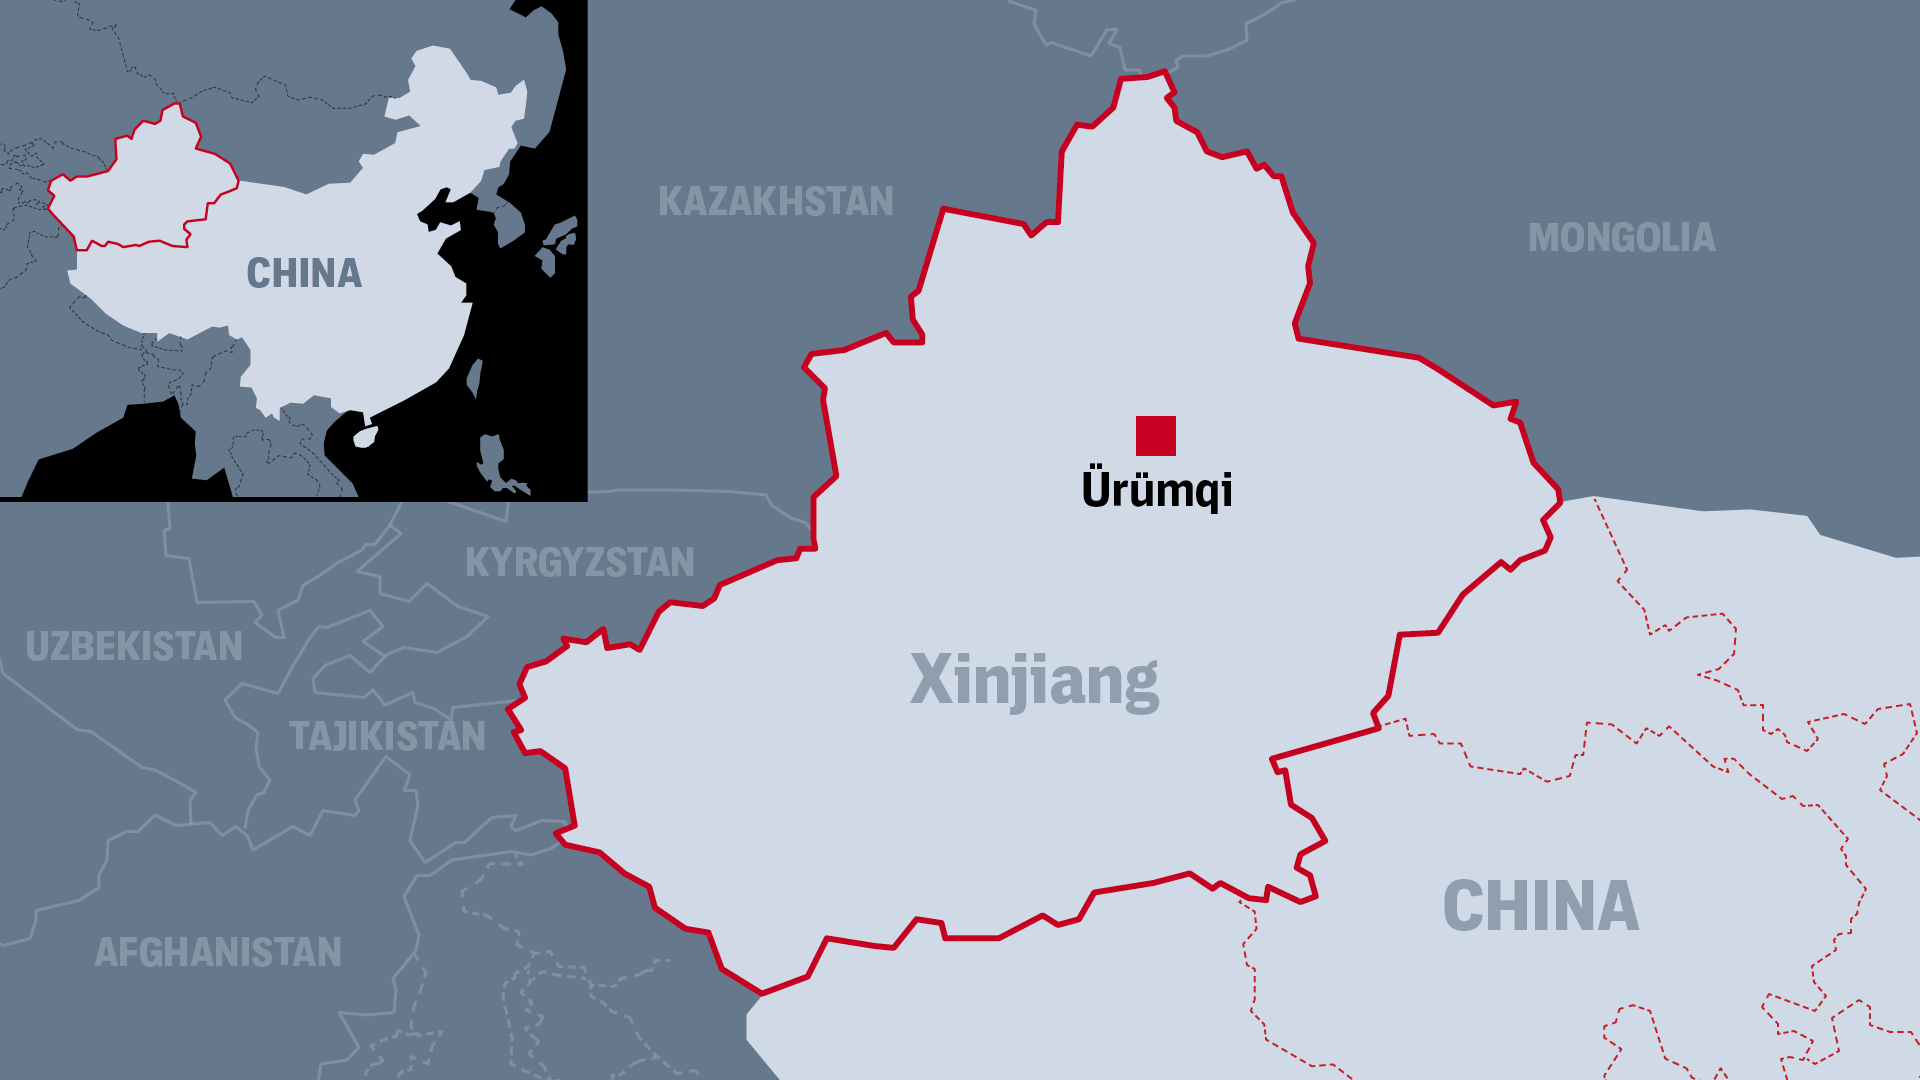 The database obtained by The Intercept contains police reports from Ürümqi, the capital and largest city in China's Xinjiang Uyghur Autonomous Region.